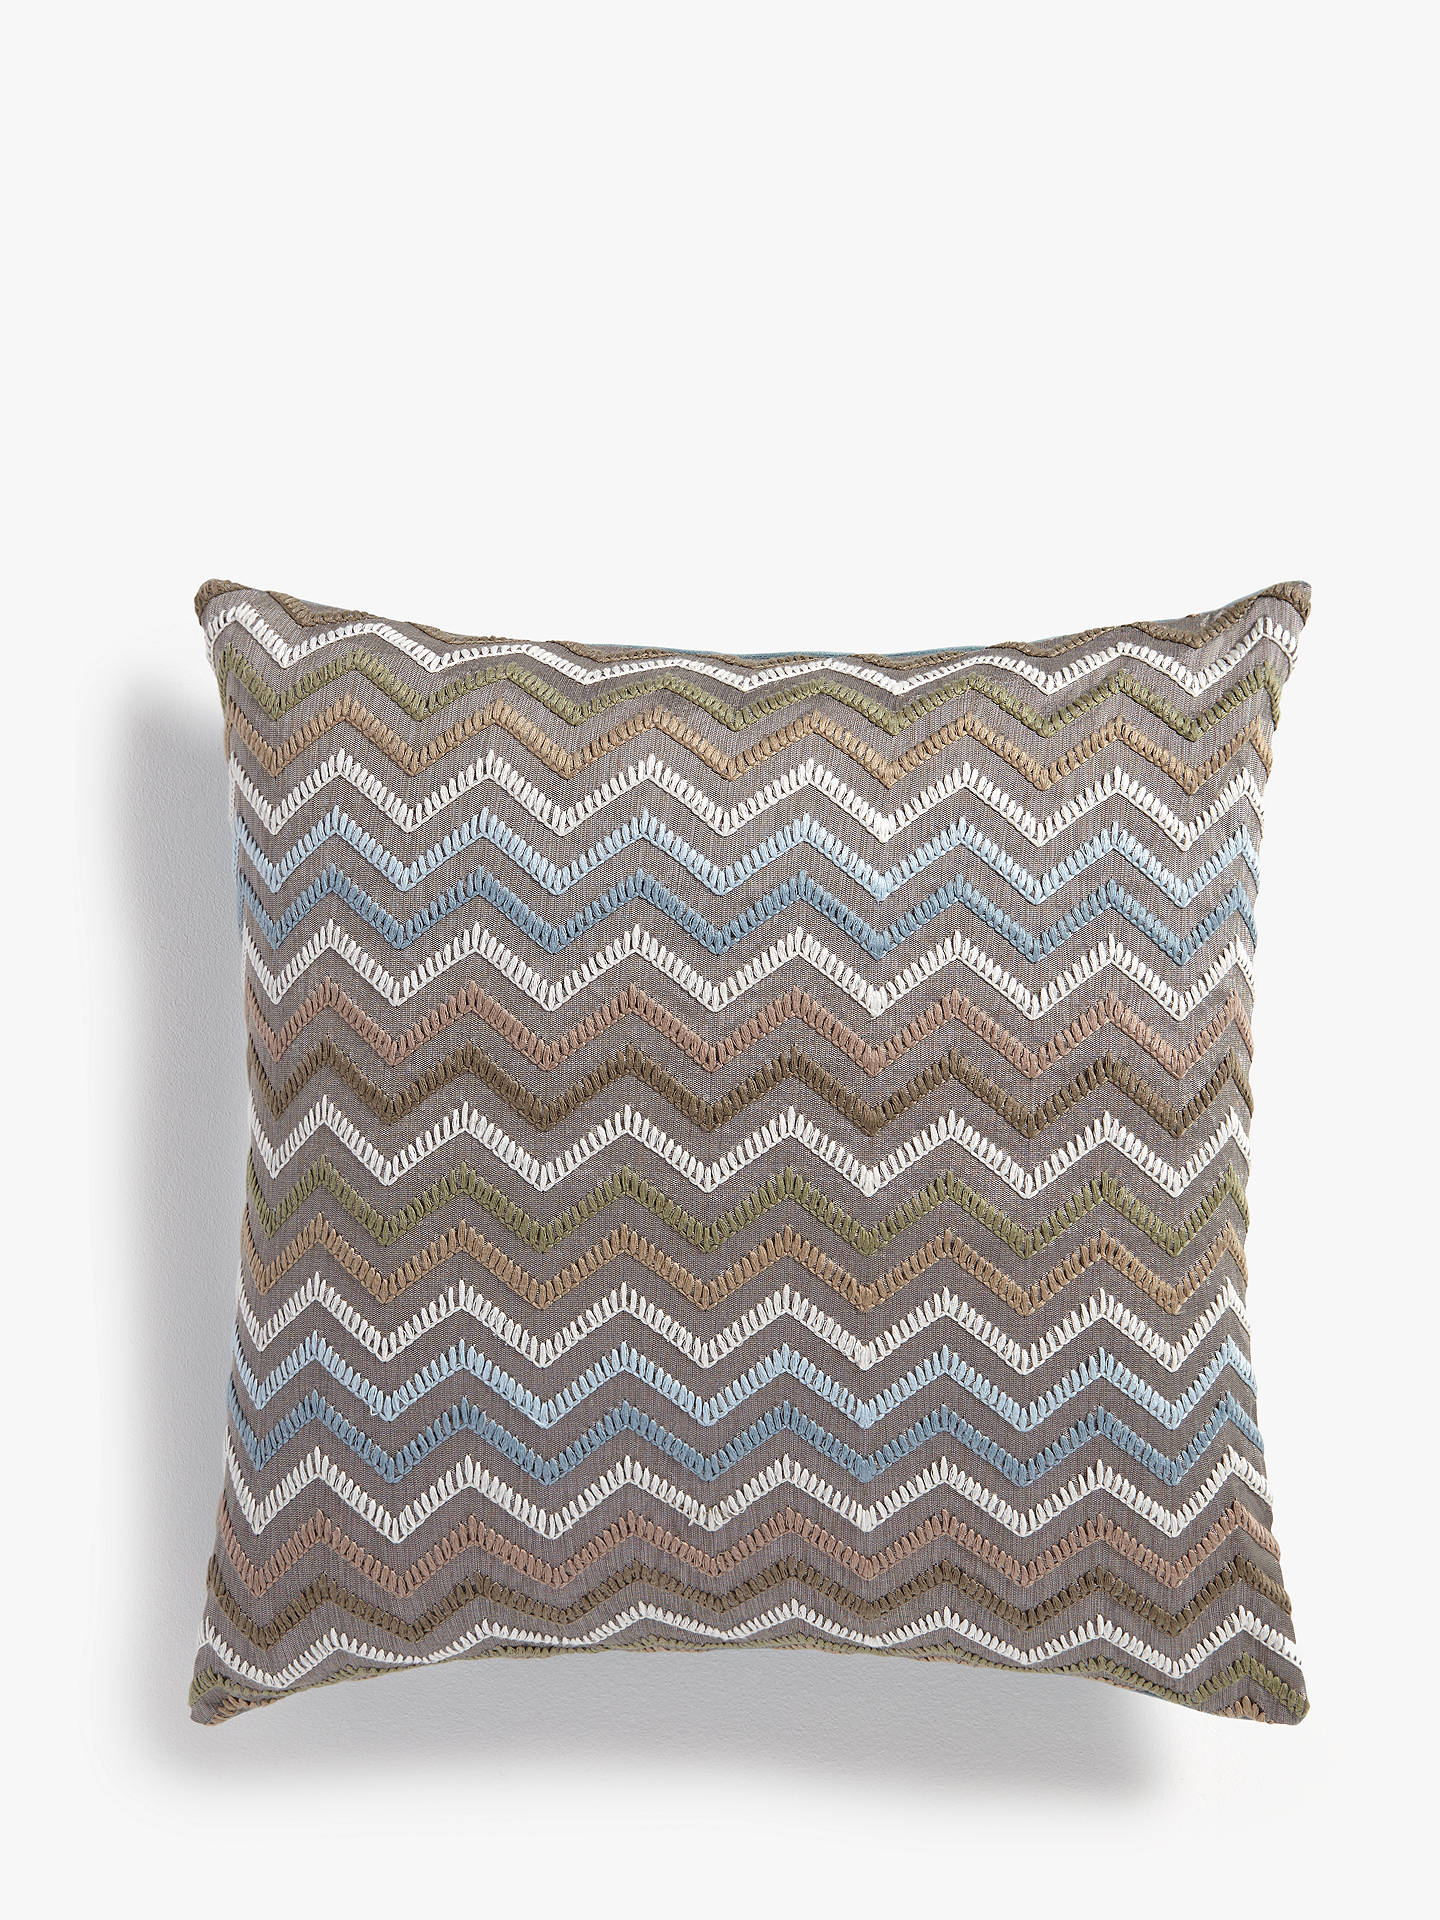 Osborne & Little Taggia Cushion at John Lewis & Partners